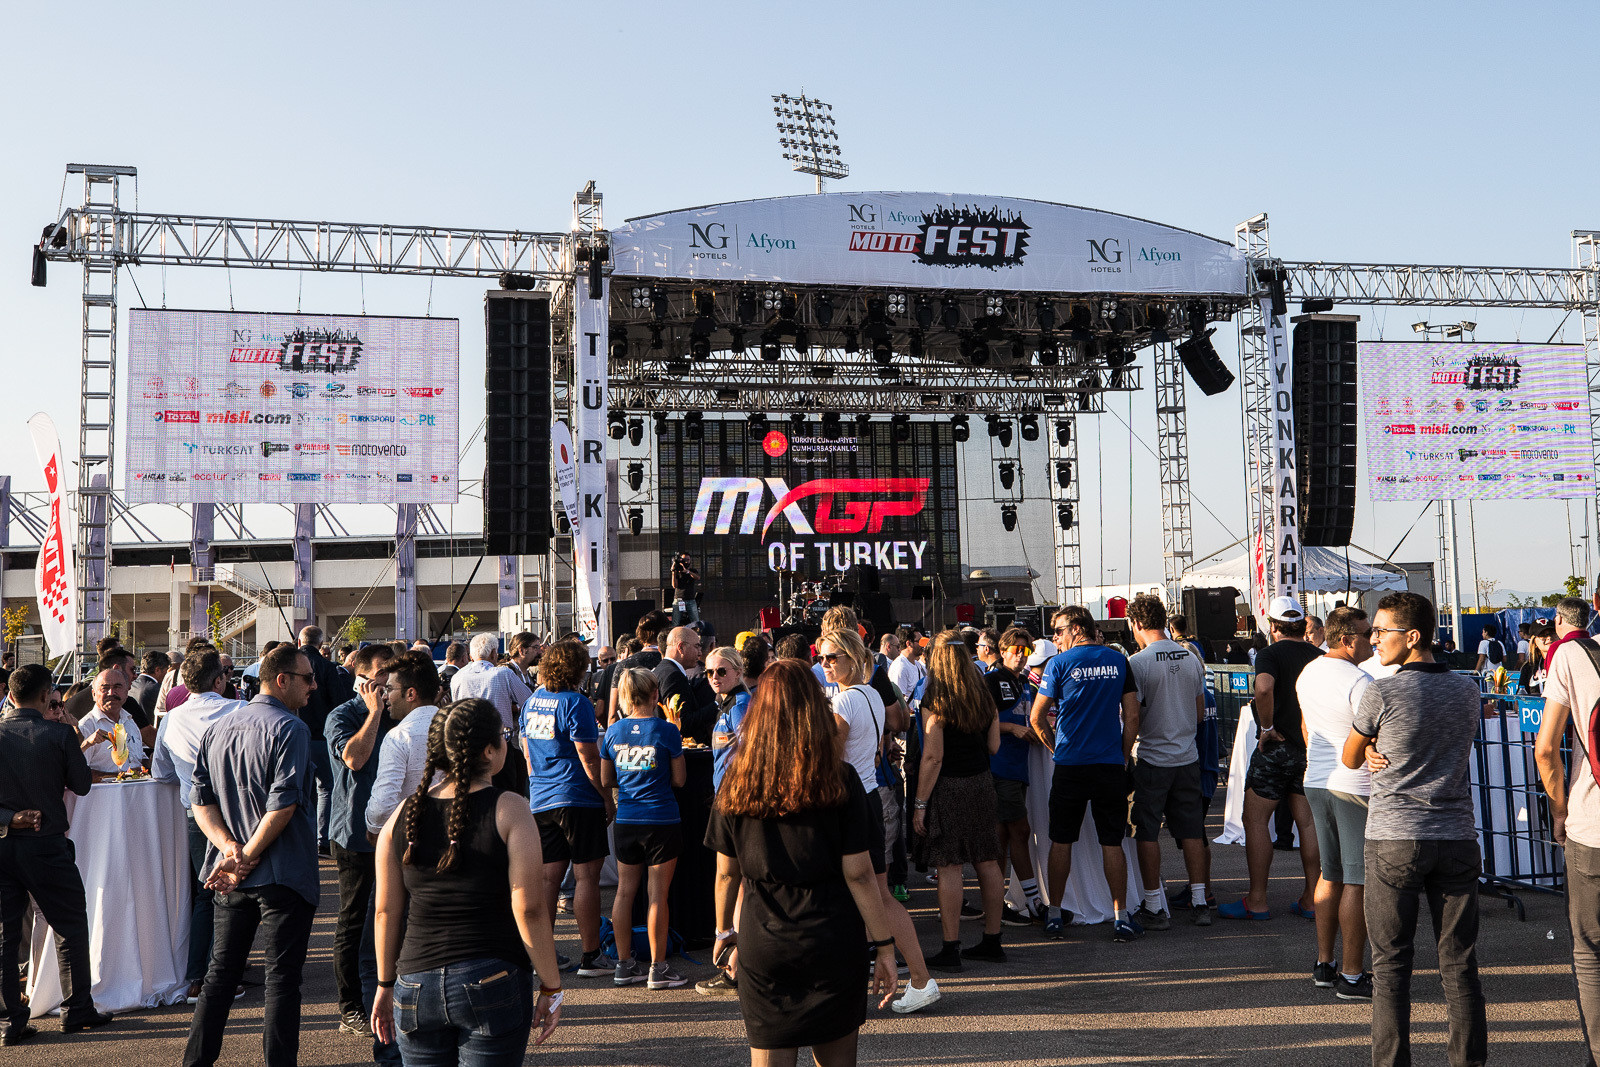 The Afyonkarahisar Motorsports Center looks like quite the facility, and the opening ceremonies were held on Friday before the start of the weekend's action.